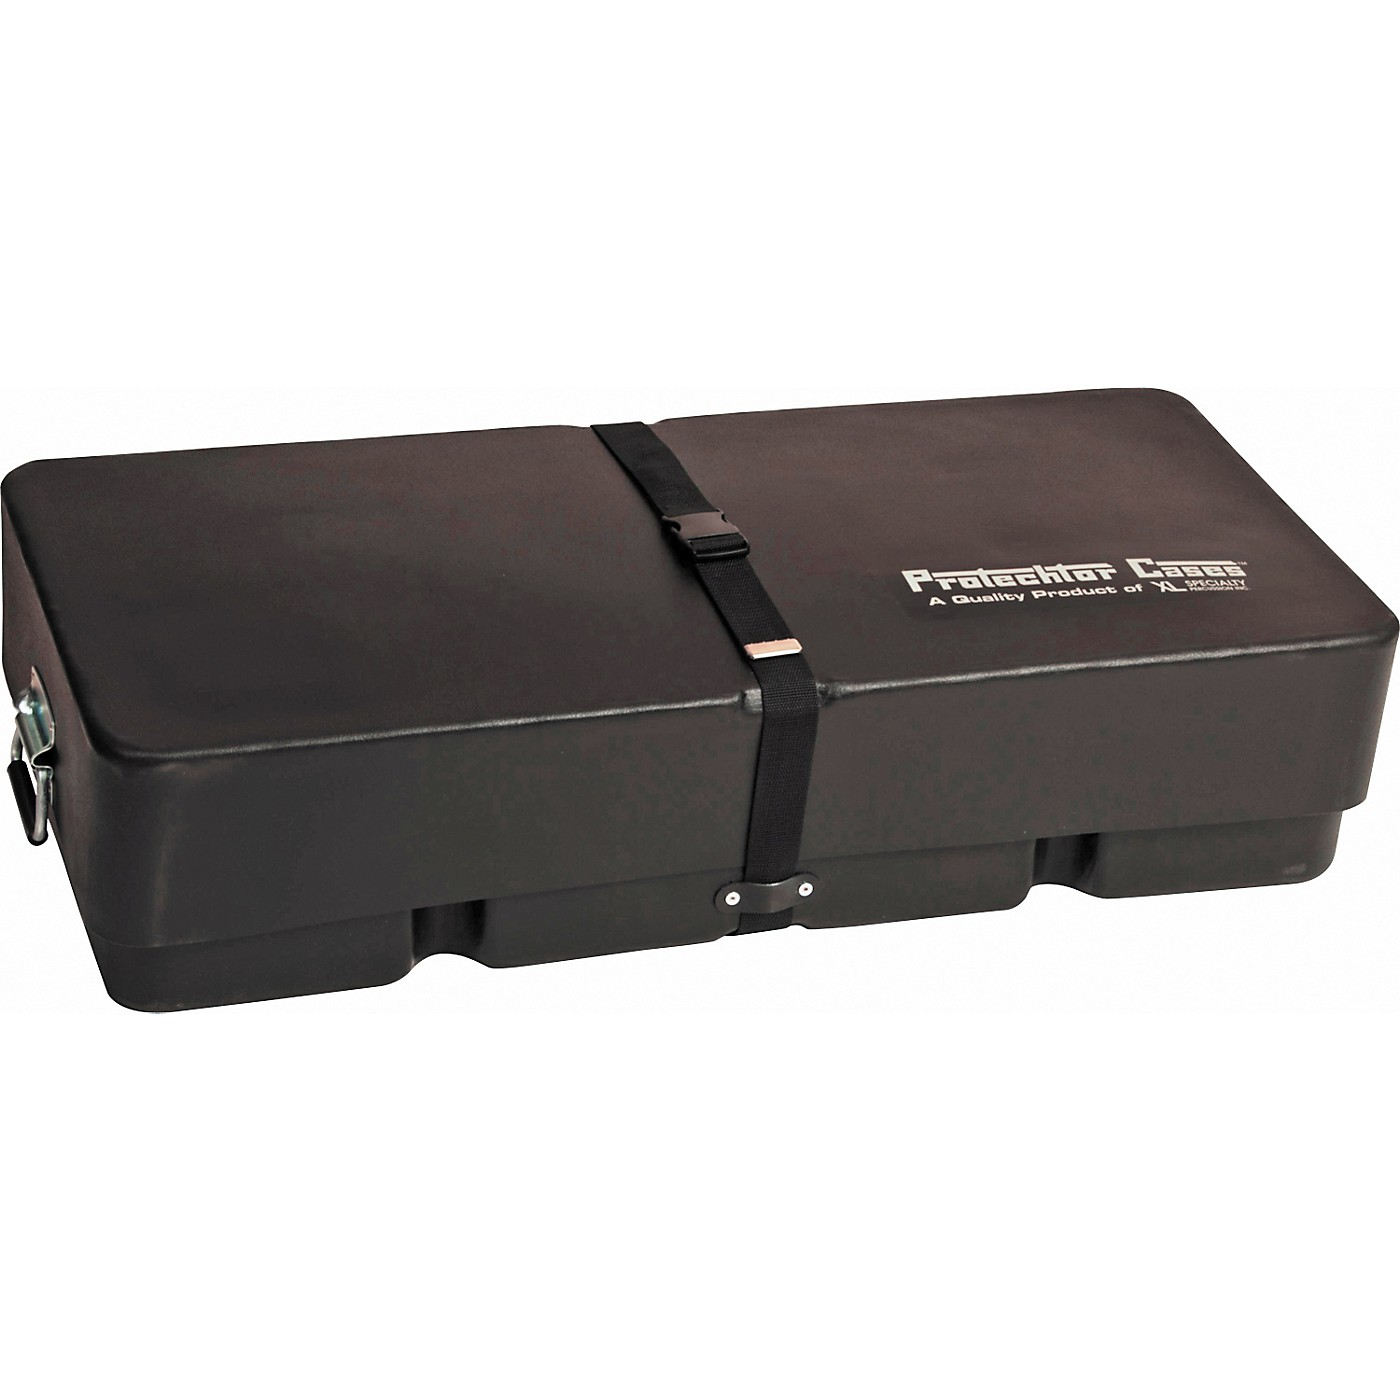 Protechtor Cases Protechtor Classic Ultra Compact Accessory Case thumbnail